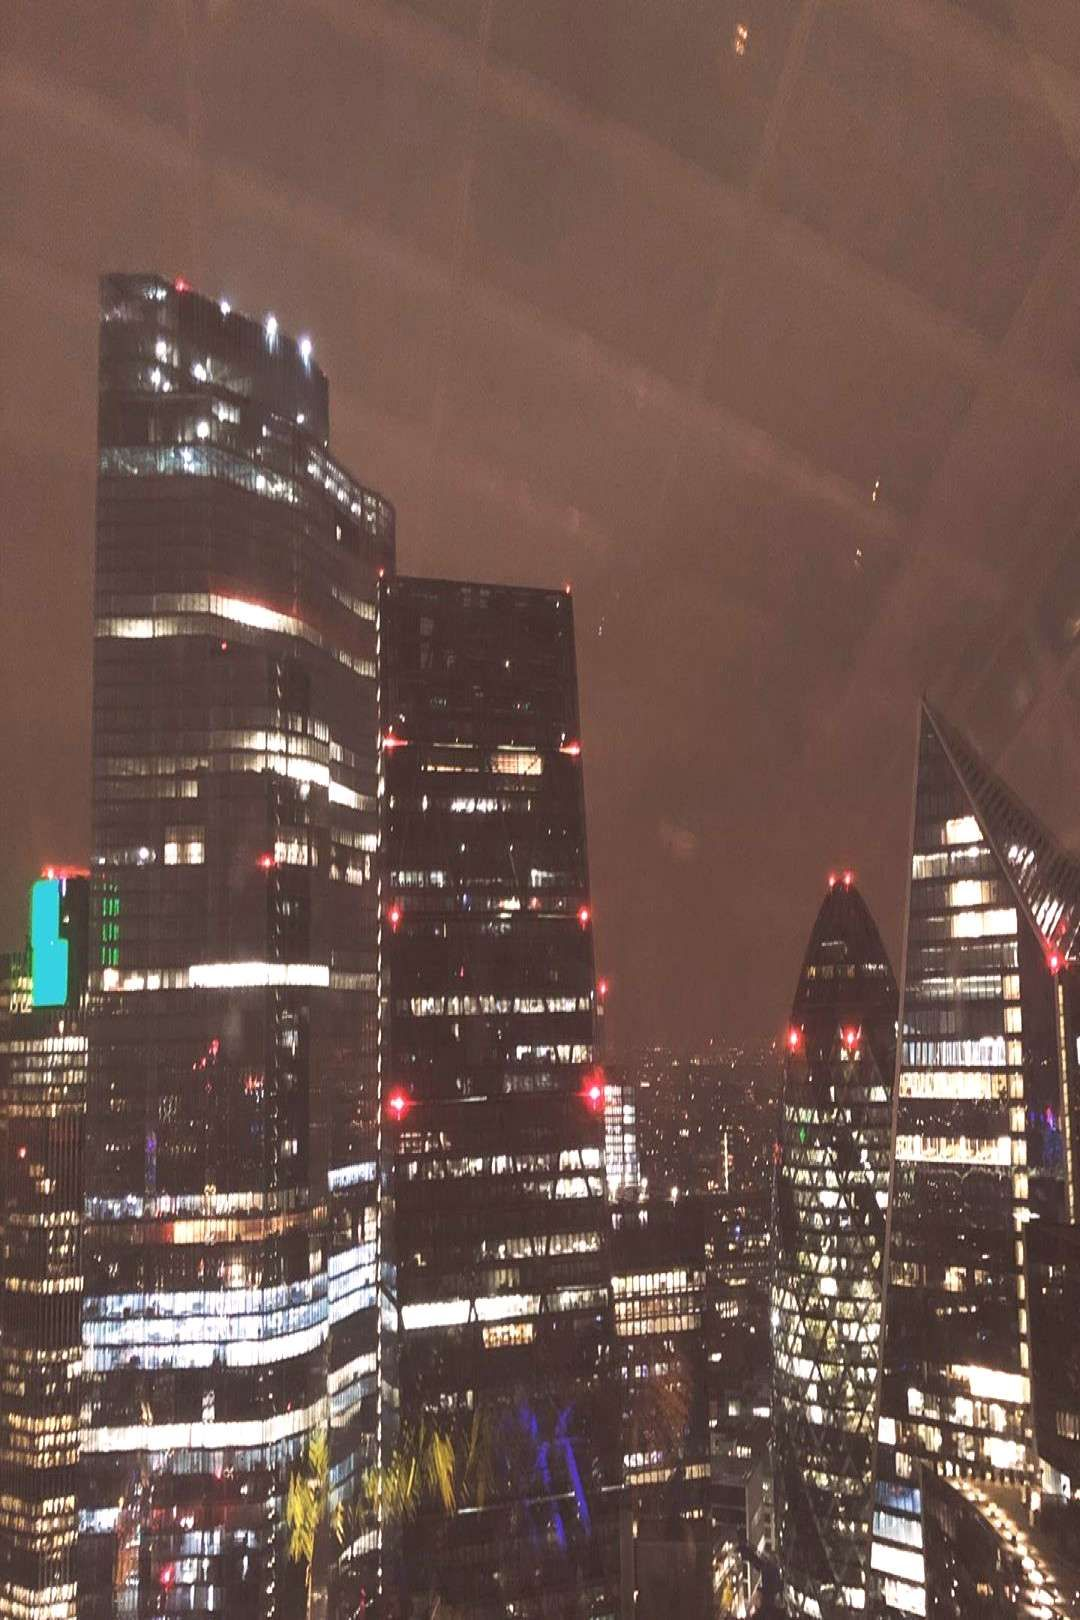 #foodanddrink #skyscraper #cityscape #london #night #and #London #foodanddrink #cityscapeYou can find Food and drink and more on our website.#London #foodanddrink #cityscape